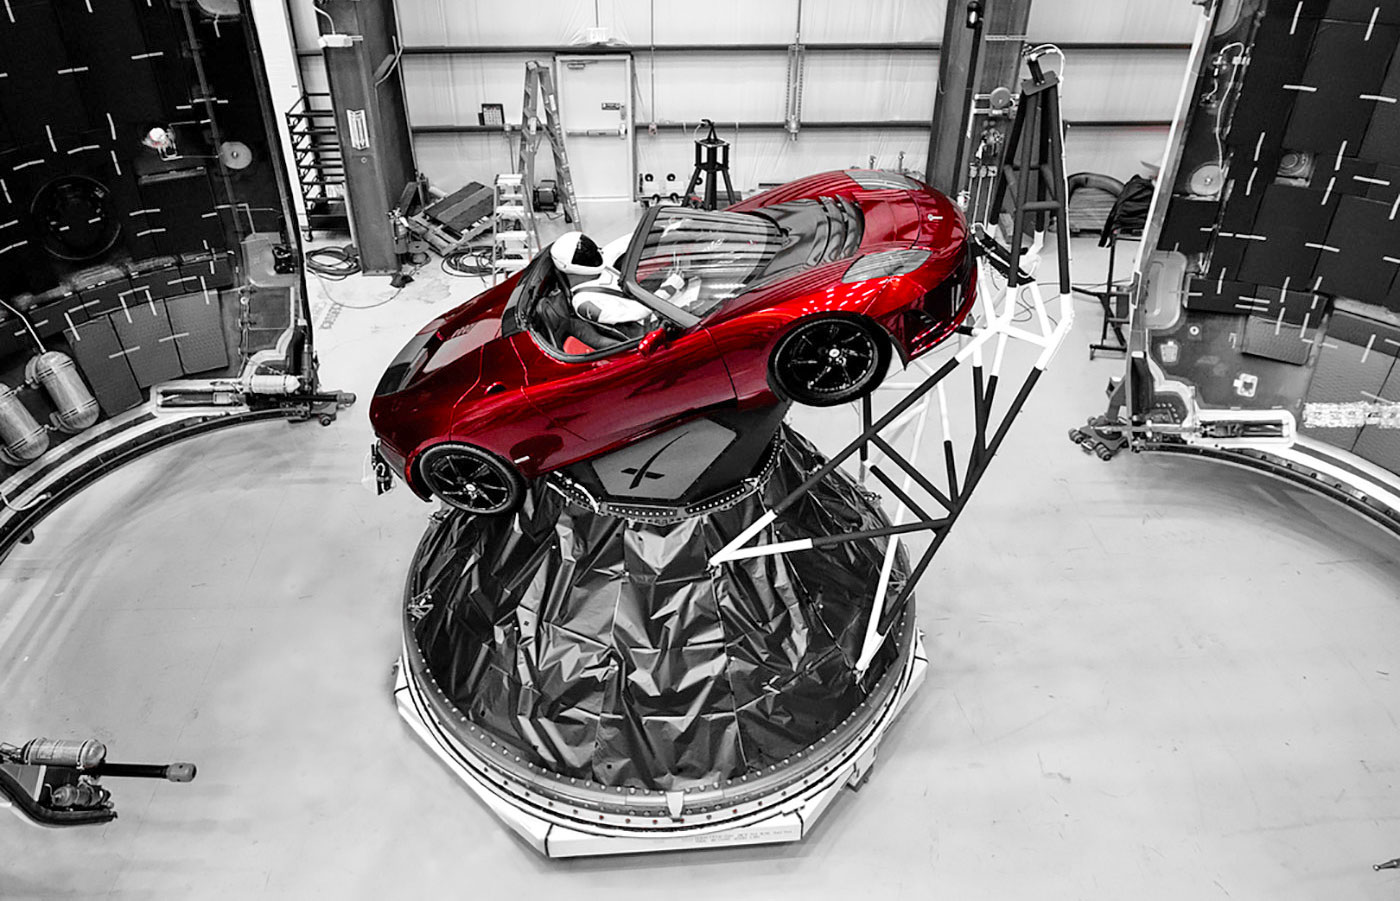 spacex 39 s falcon heavy launch gets a spacesuit clad 39 starman 39. Black Bedroom Furniture Sets. Home Design Ideas